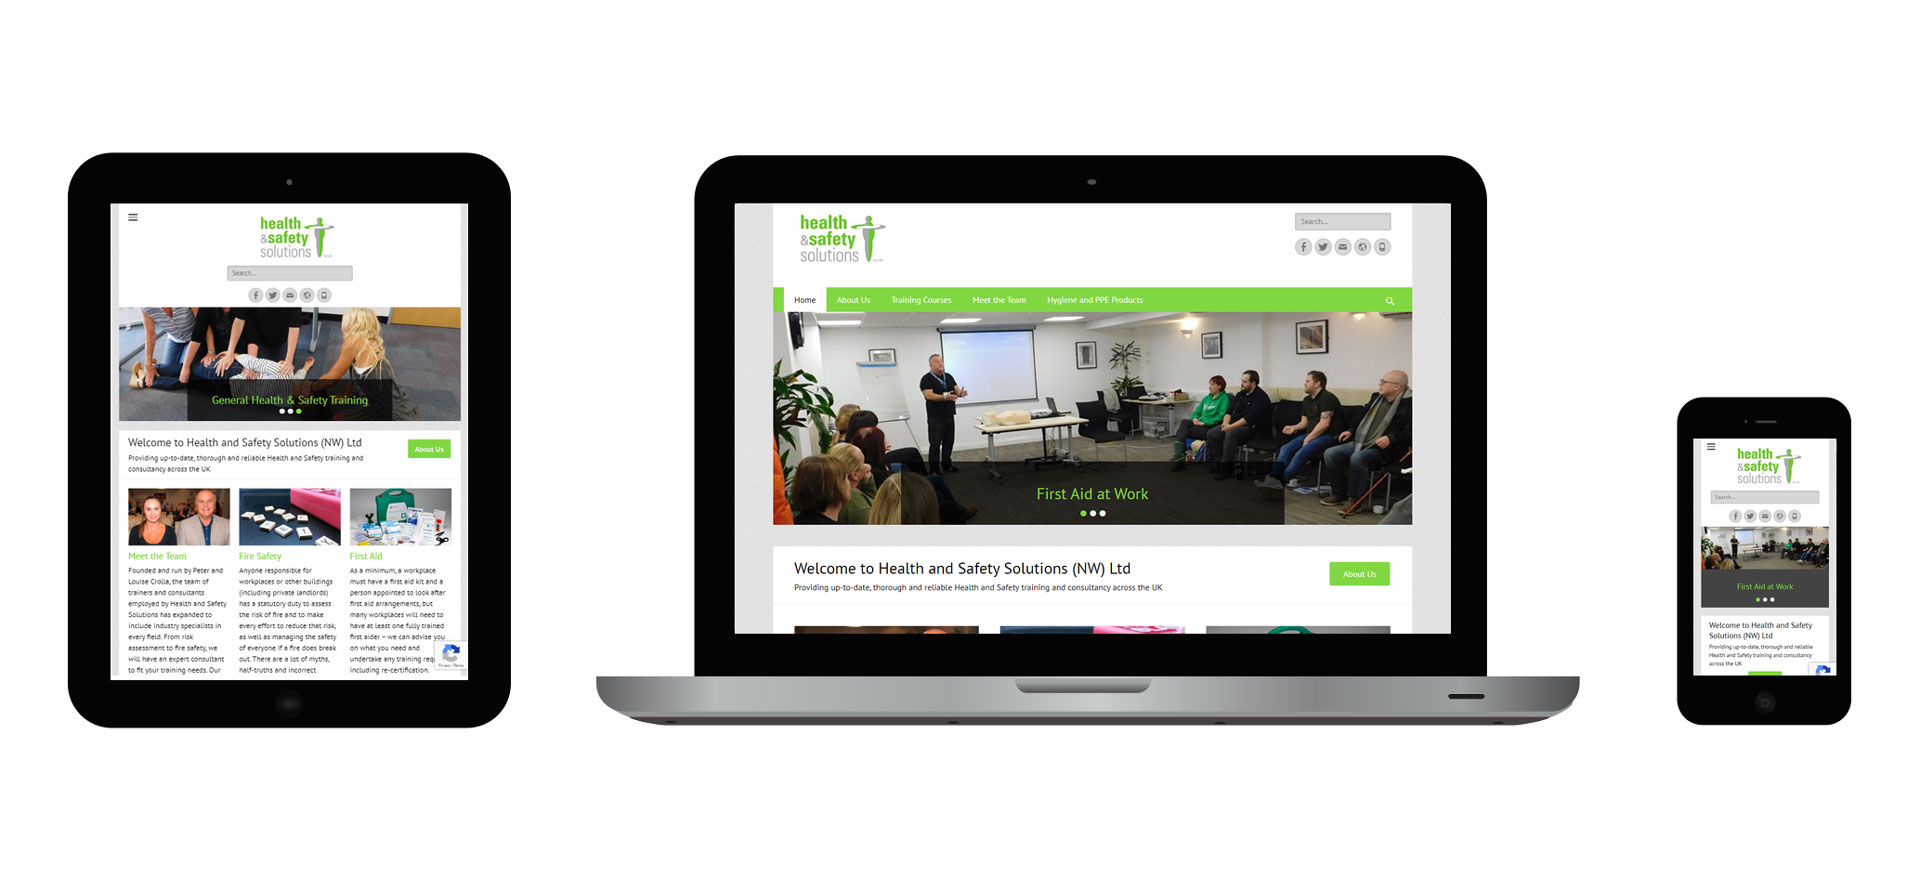 Images of the Health & Safety Solutions responsive website on different devices